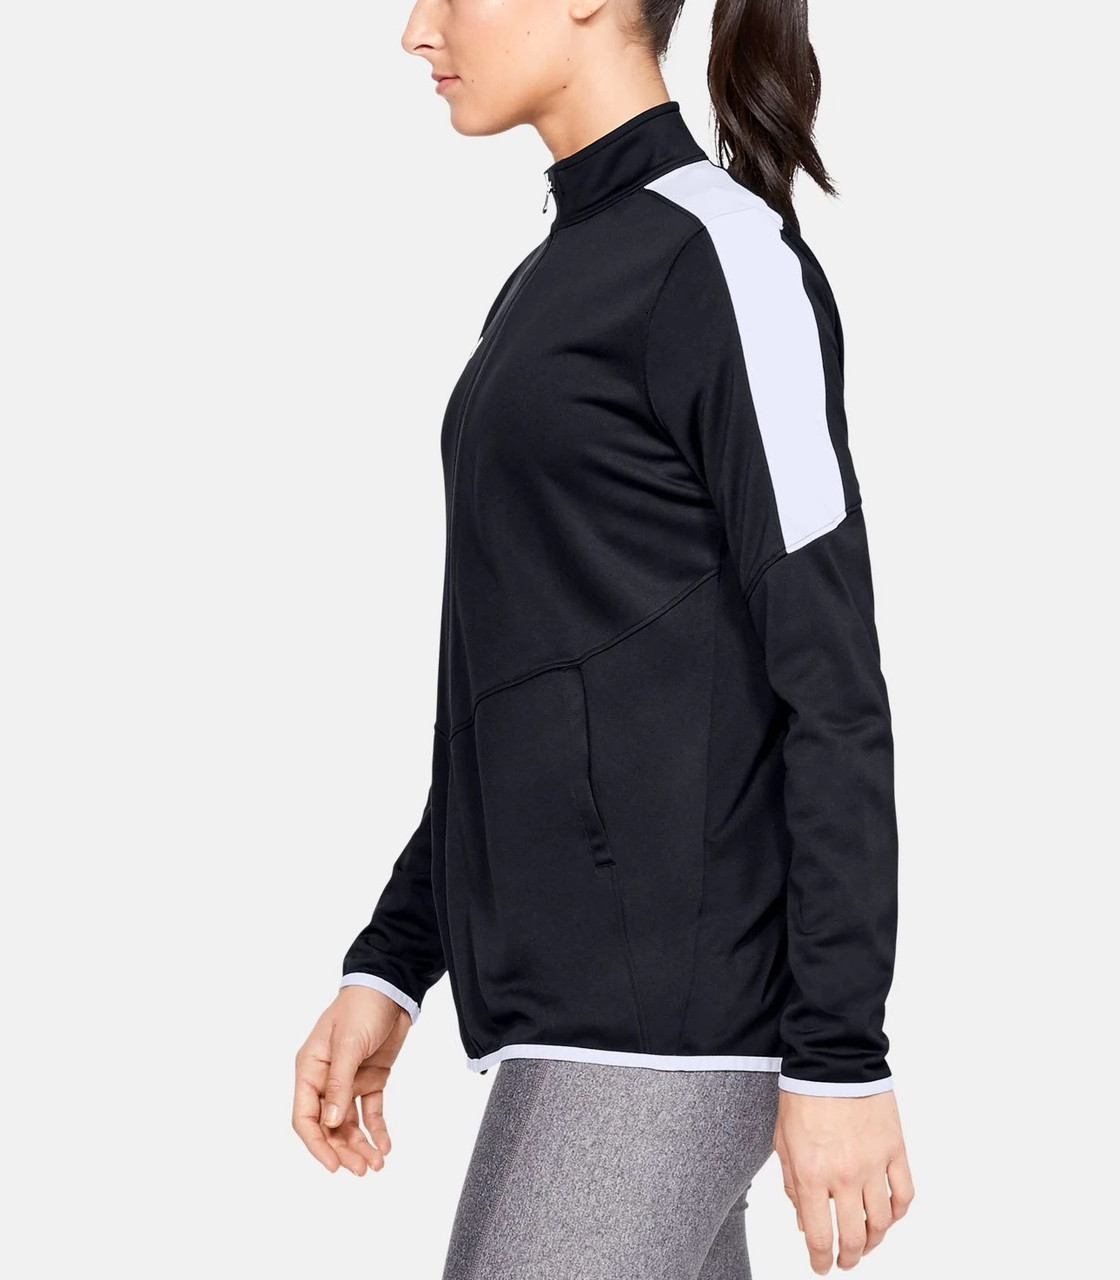 UA Women's Rival Knit Jacket- Side